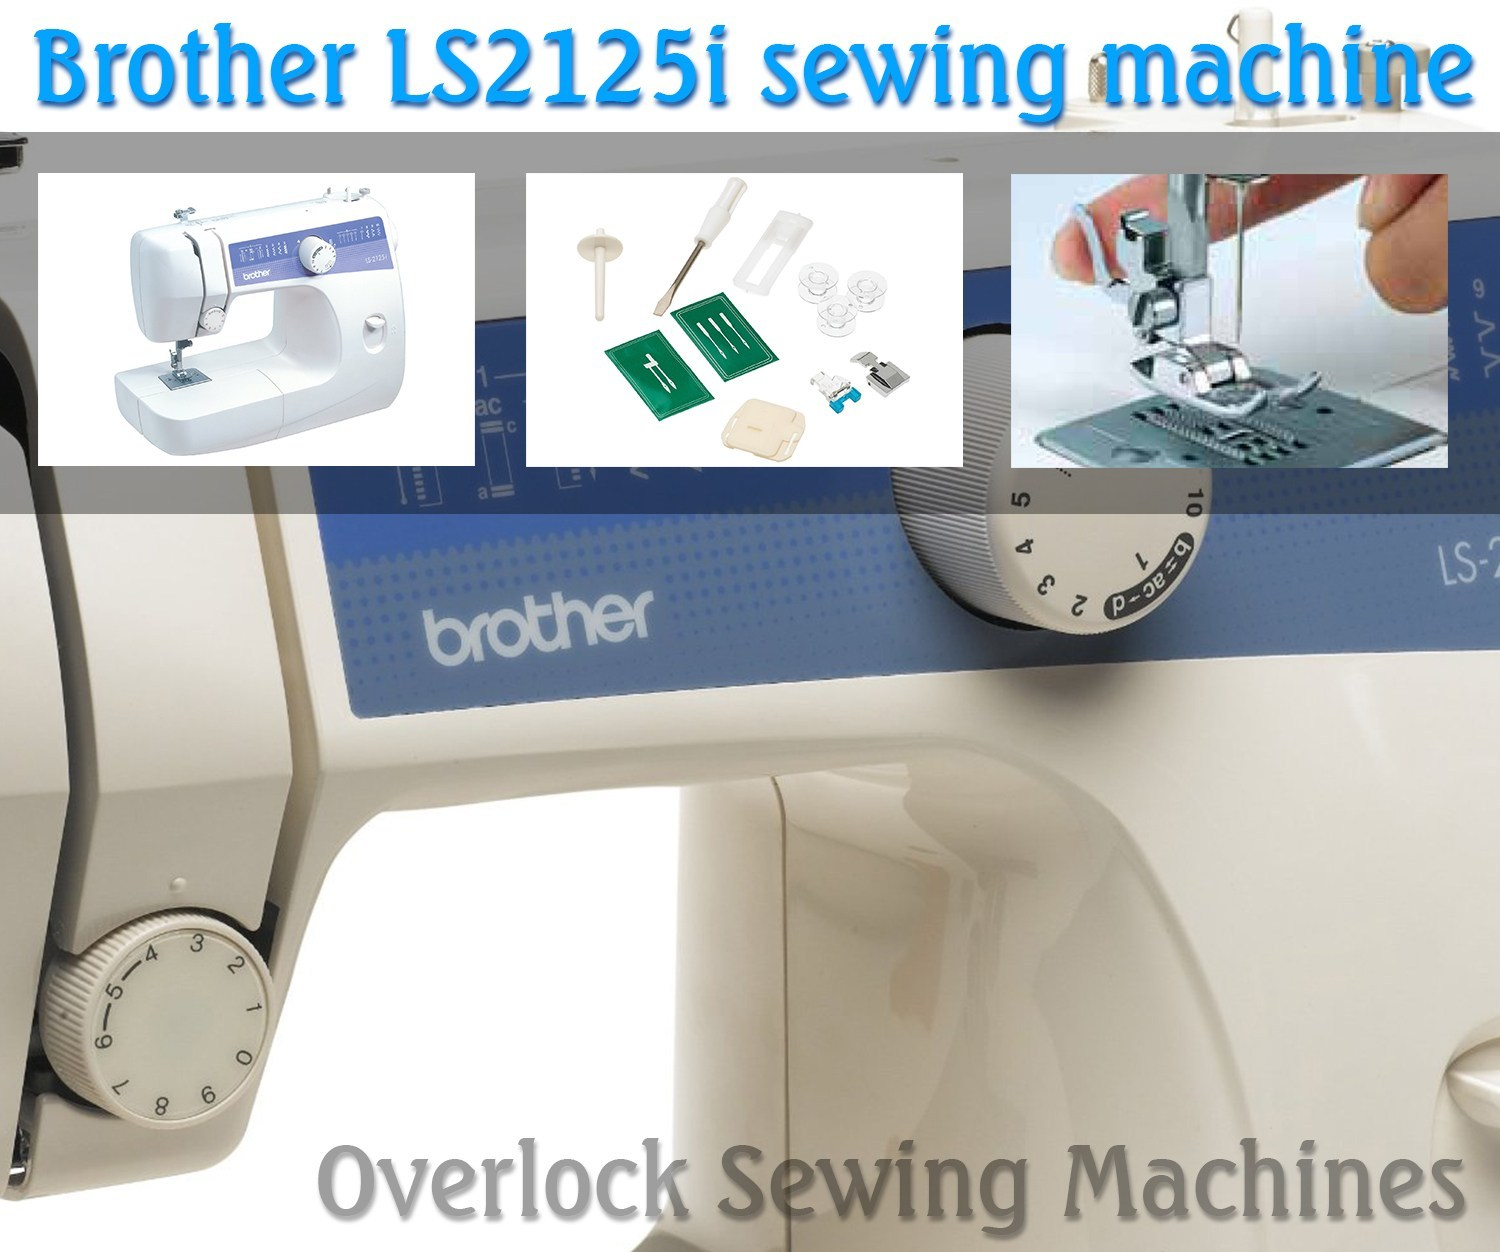 Brother LS2125i sewing machine (Image: amazon)